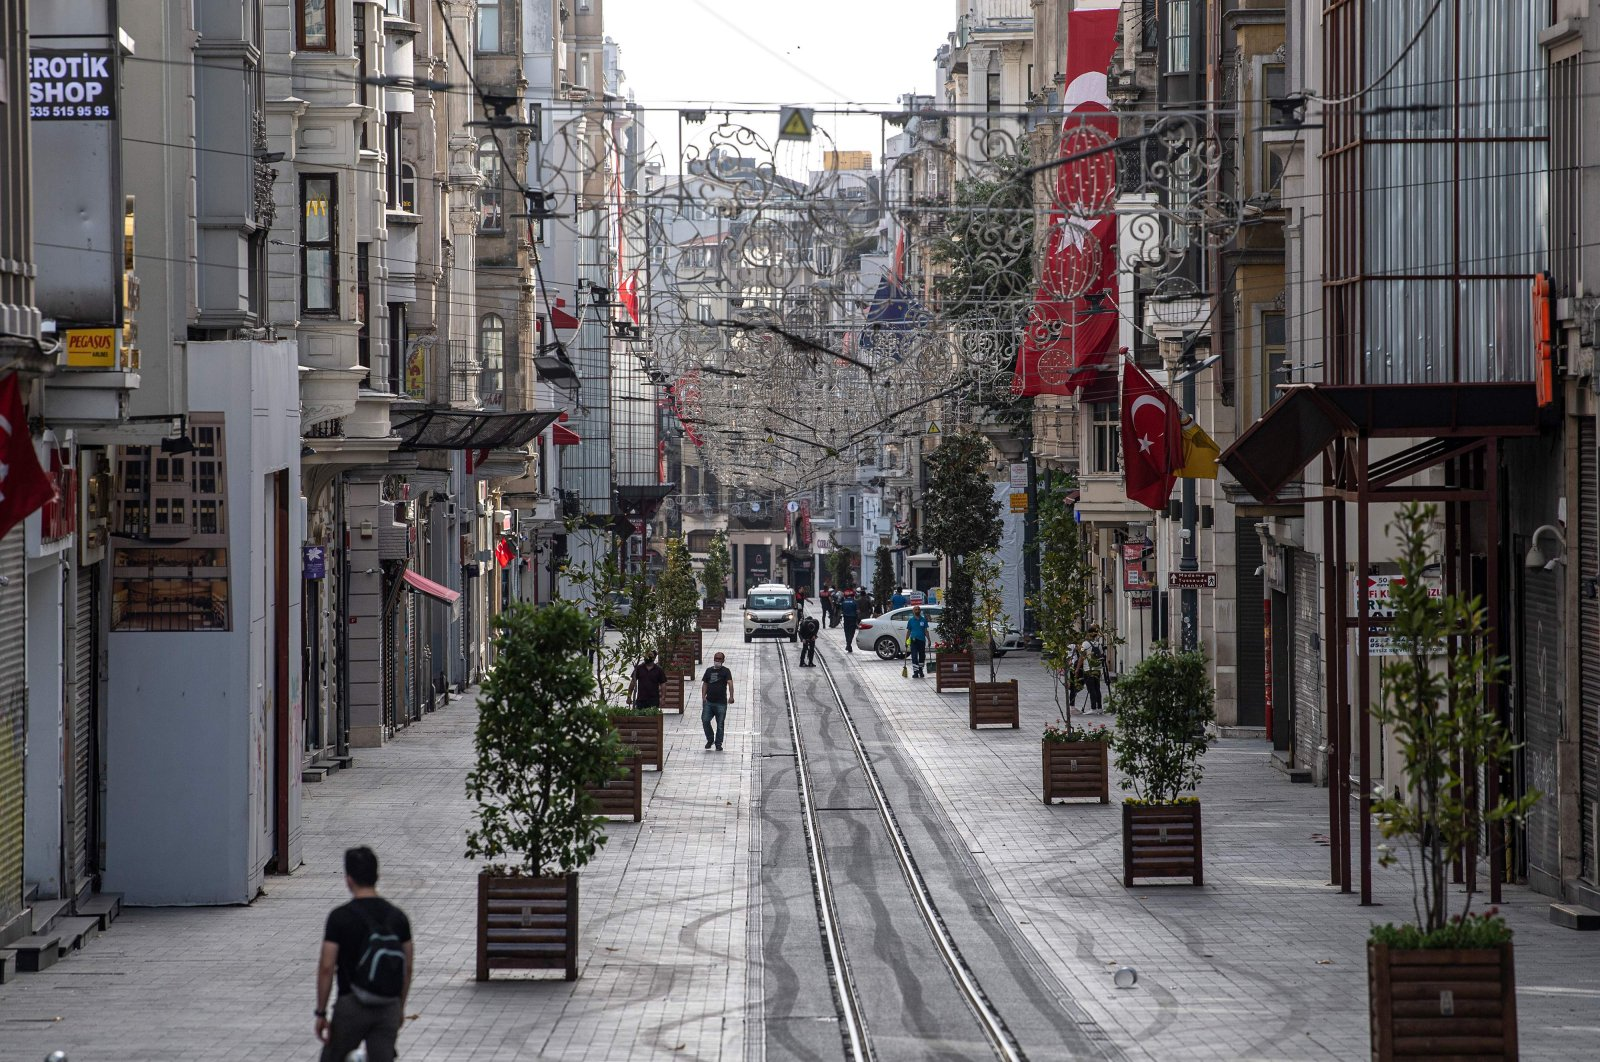 People walk in the deserted İstiklal street at Taksim district in Istanbul on May 16, 2020, during a four-day curfew to prevent the spread of the pandemic COVID-19 caused by the novel coronavirus. (AFP Photo)